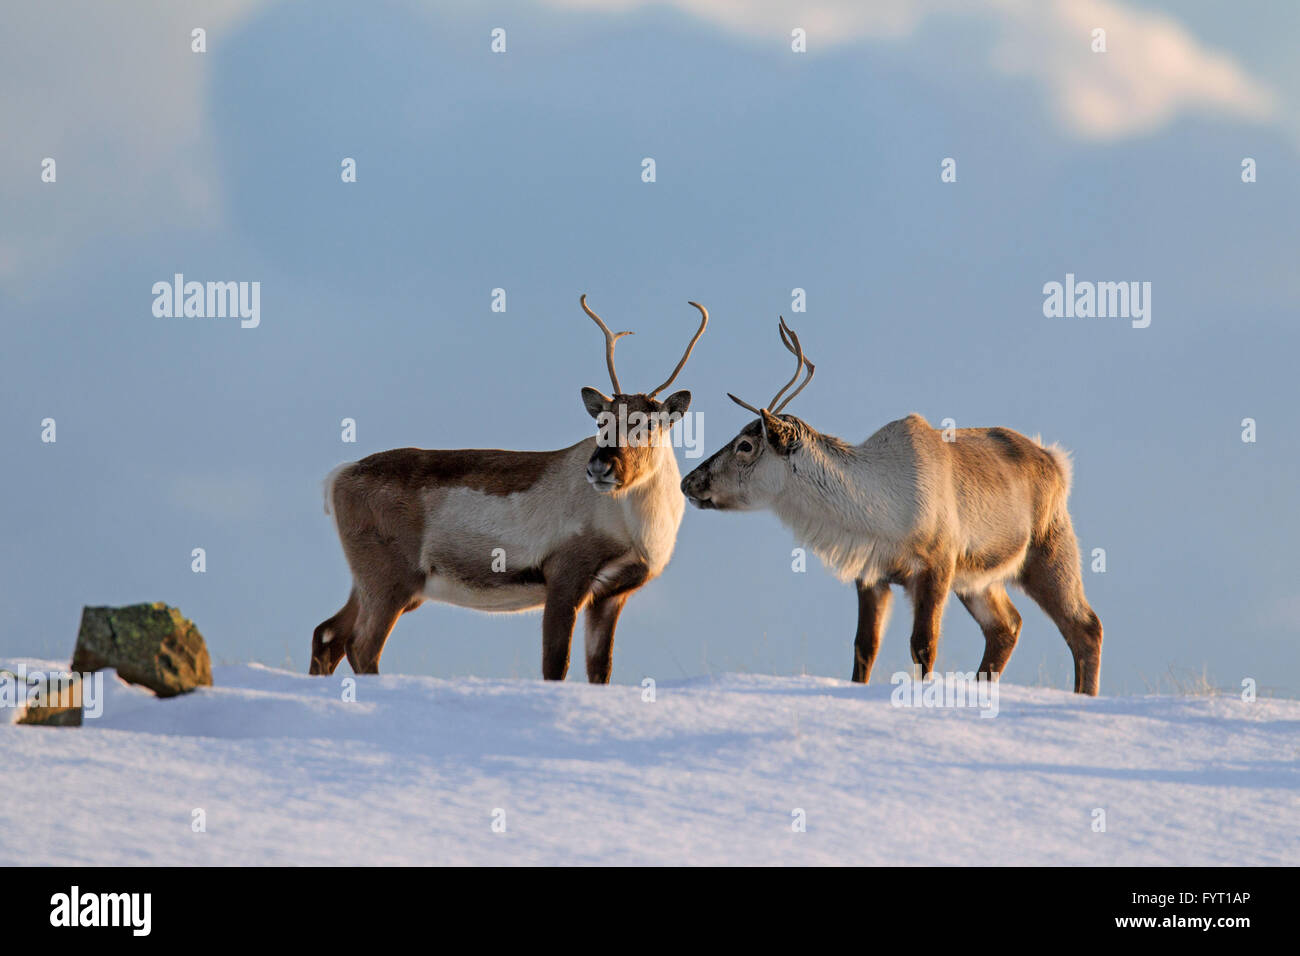 Two reindeer (Rangifer tarandus) foraging in snow covered winter landscape, Iceland - Stock Image